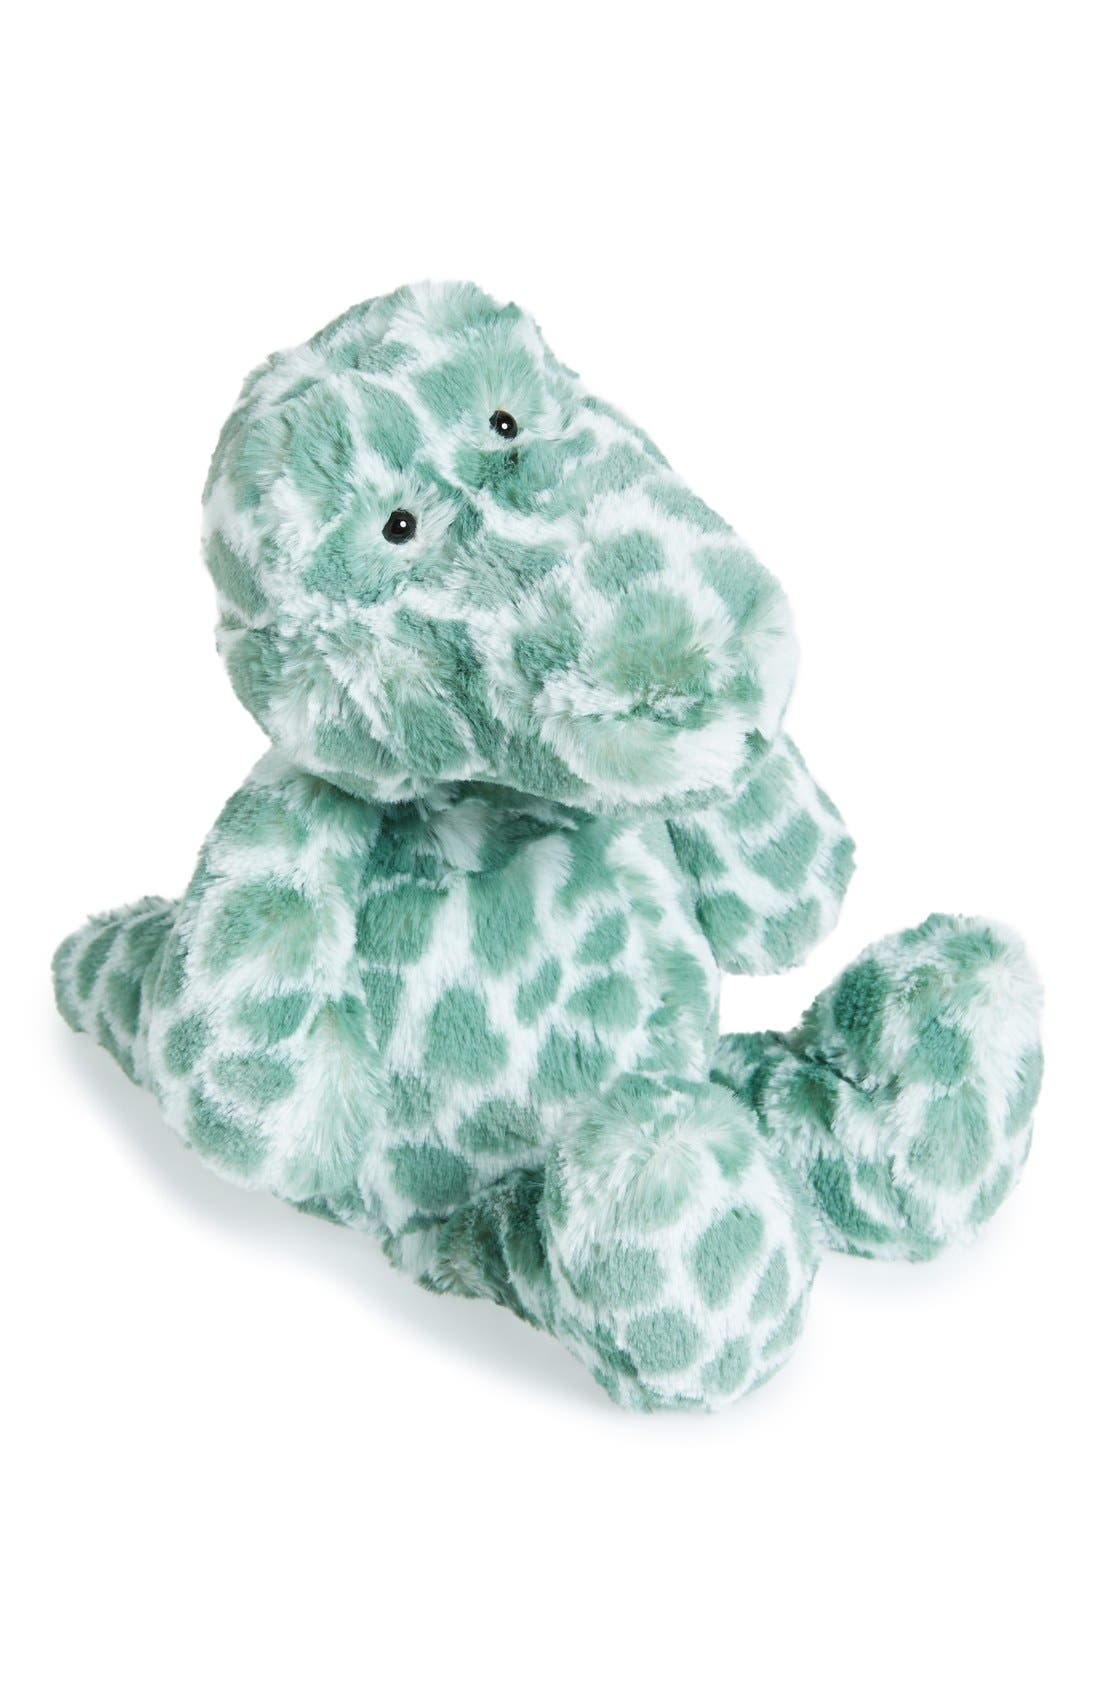 'Dapple Croc' Stuffed Animal,                         Main,                         color, 440